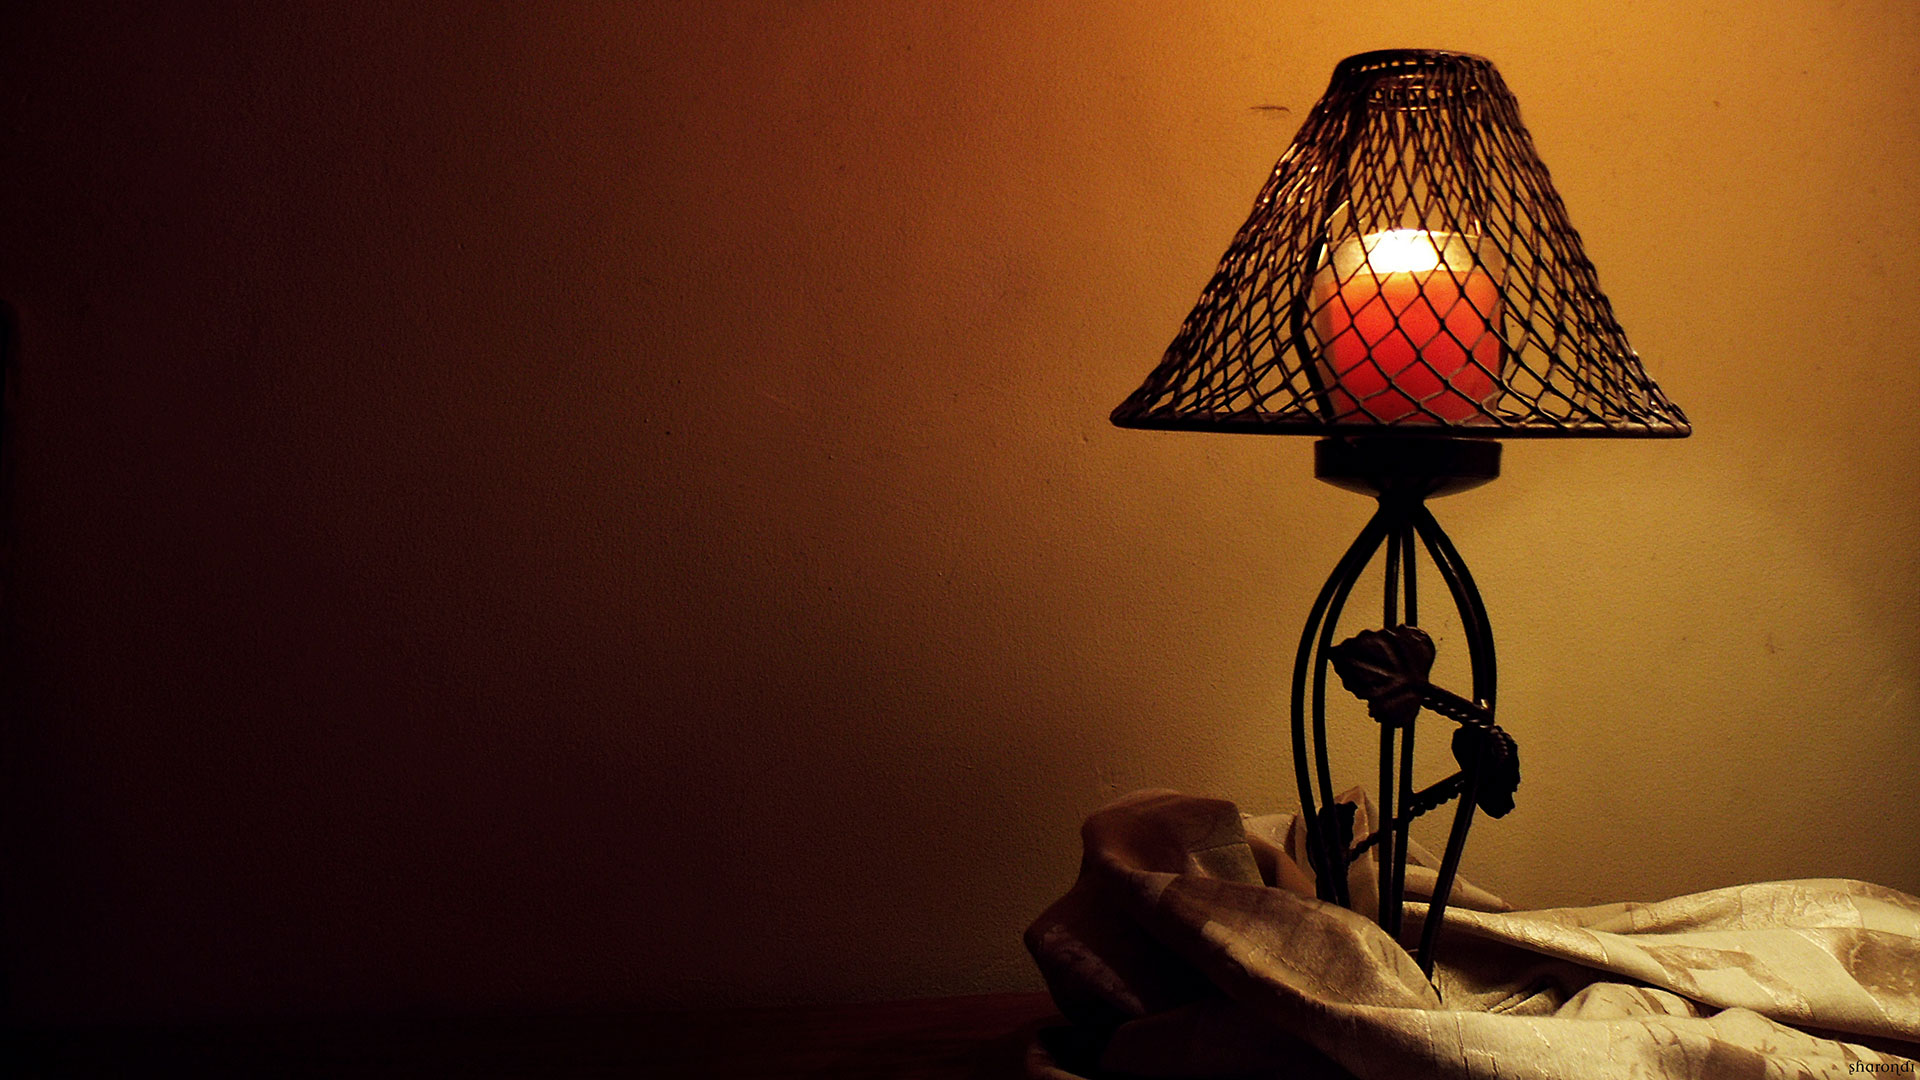 Old Candle Light Lamp wallpaper